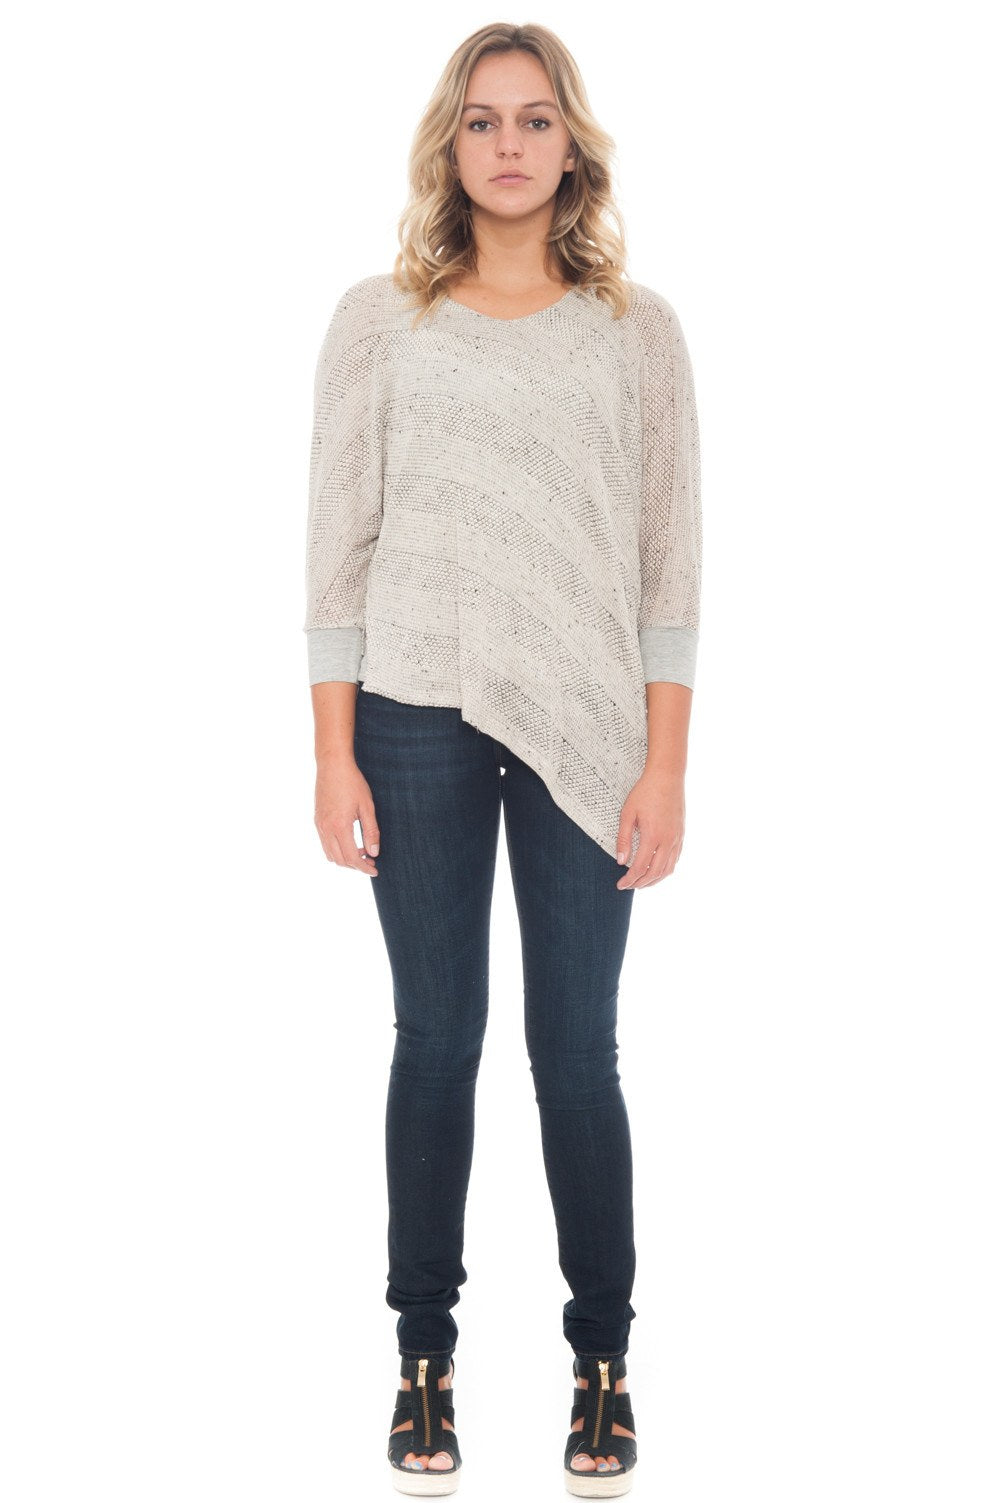 Blouse - Knit with Asymmetrical Hem - 2